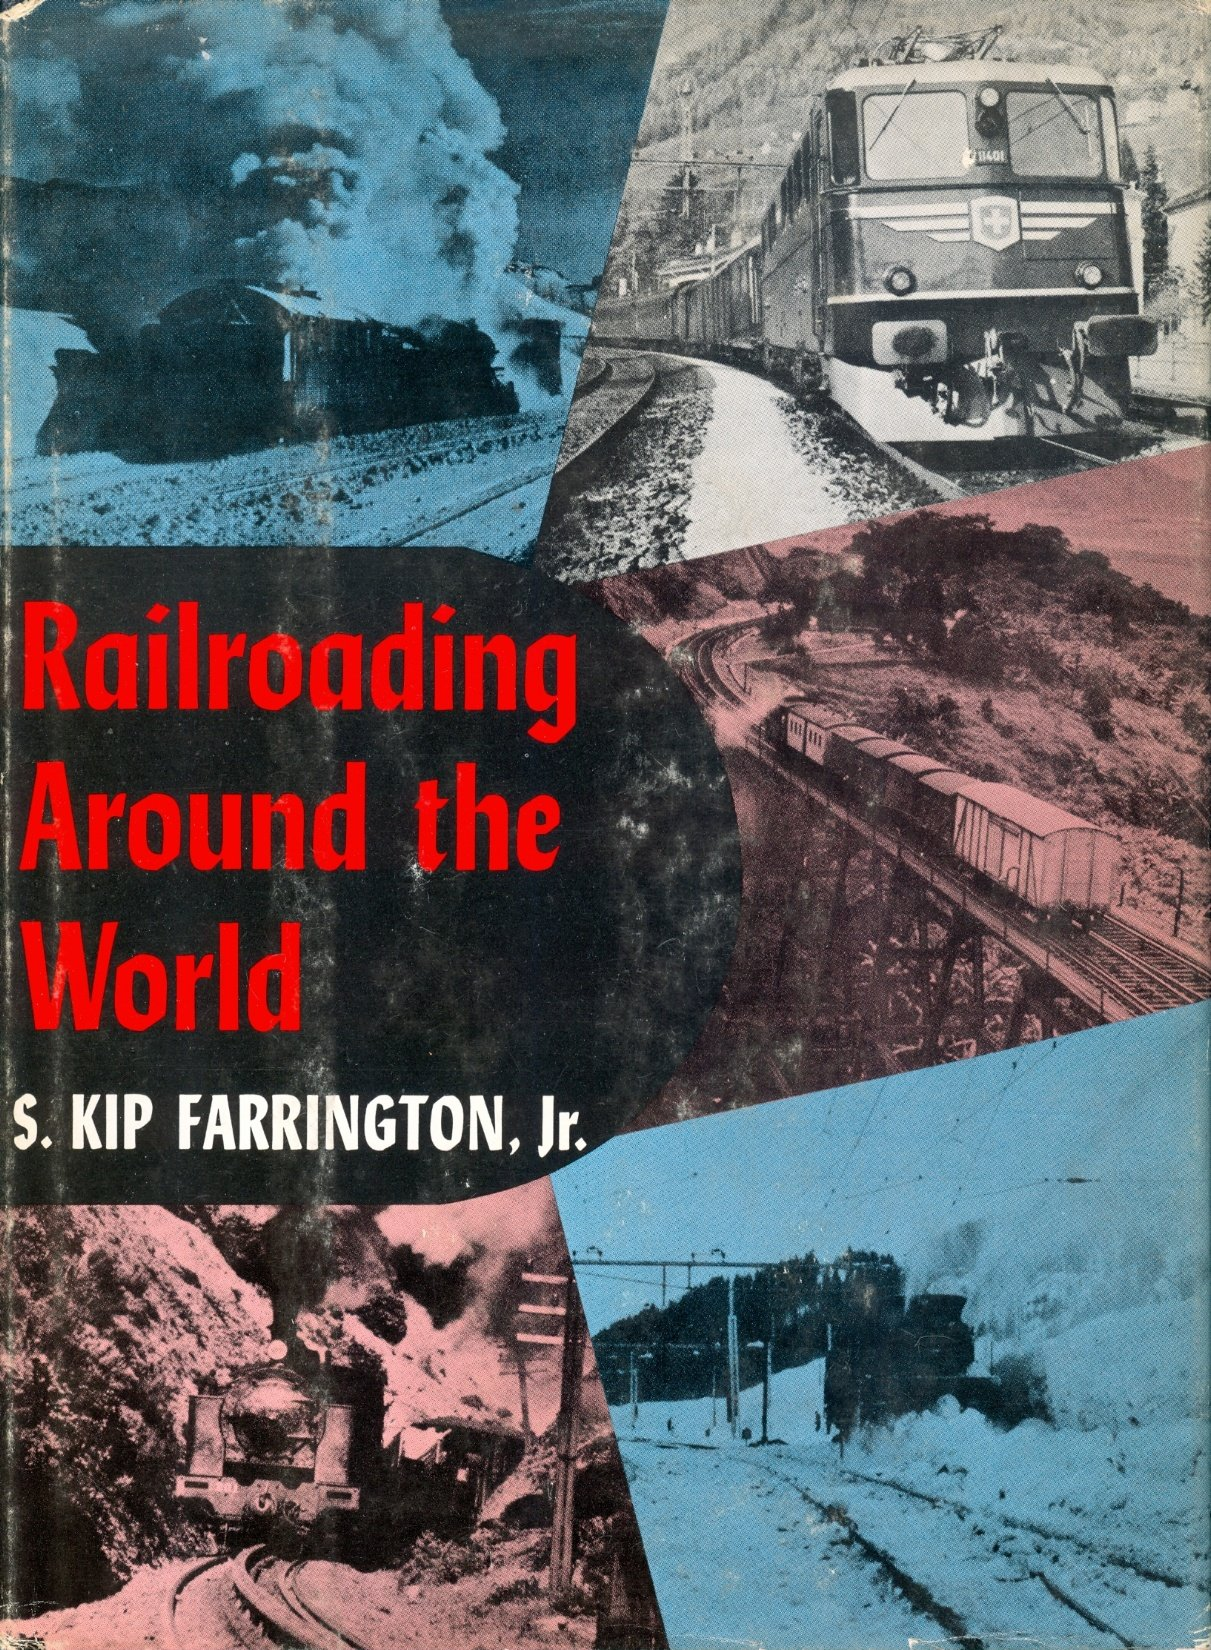 Image for Railroading Around the World.